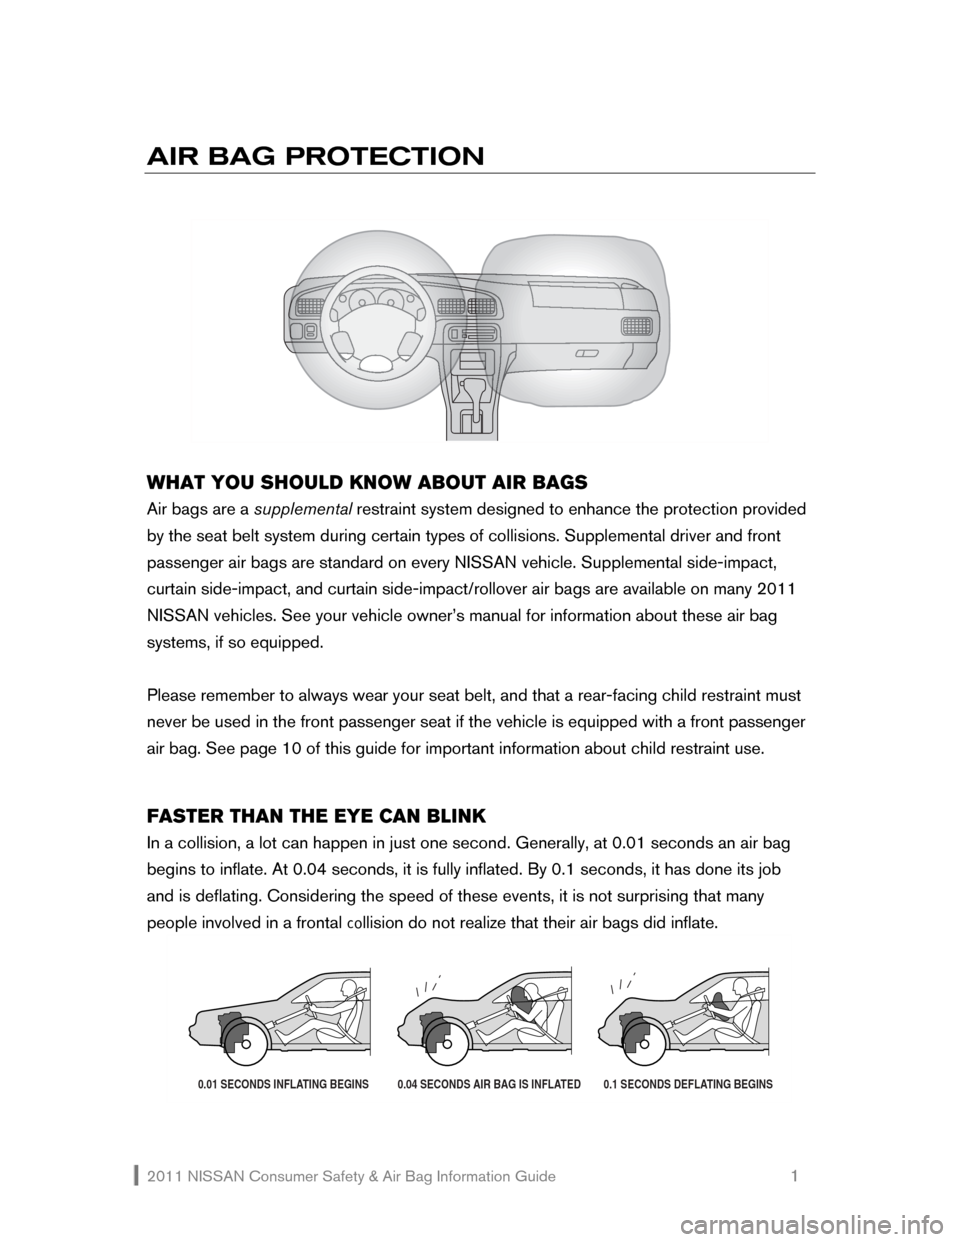 NISSAN ROGUE 2011 1.G Consumer Safety Air Bag Information Guide 2011 NISSAN Consumer Safety & Air Bag Information Guide                                                       1  AIR BAG PROTECTION           WHAT YOU SHOULD KNOW ABOUT AIR BAGS  Air bags are a supple